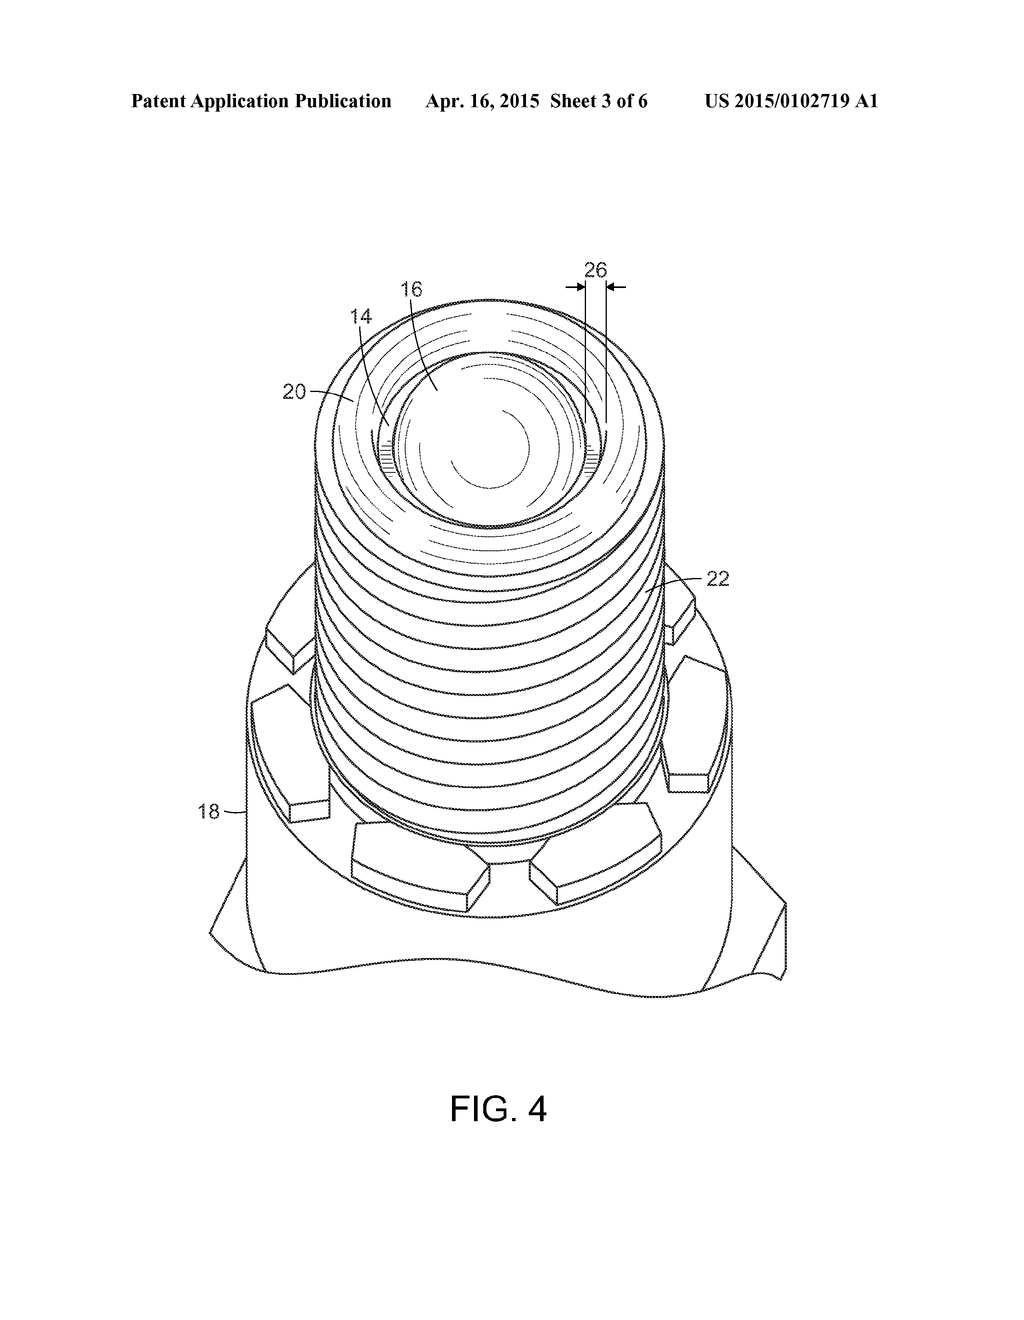 hight resolution of plasma ignition plug for an internal combustion engine diagram schematic and image 04